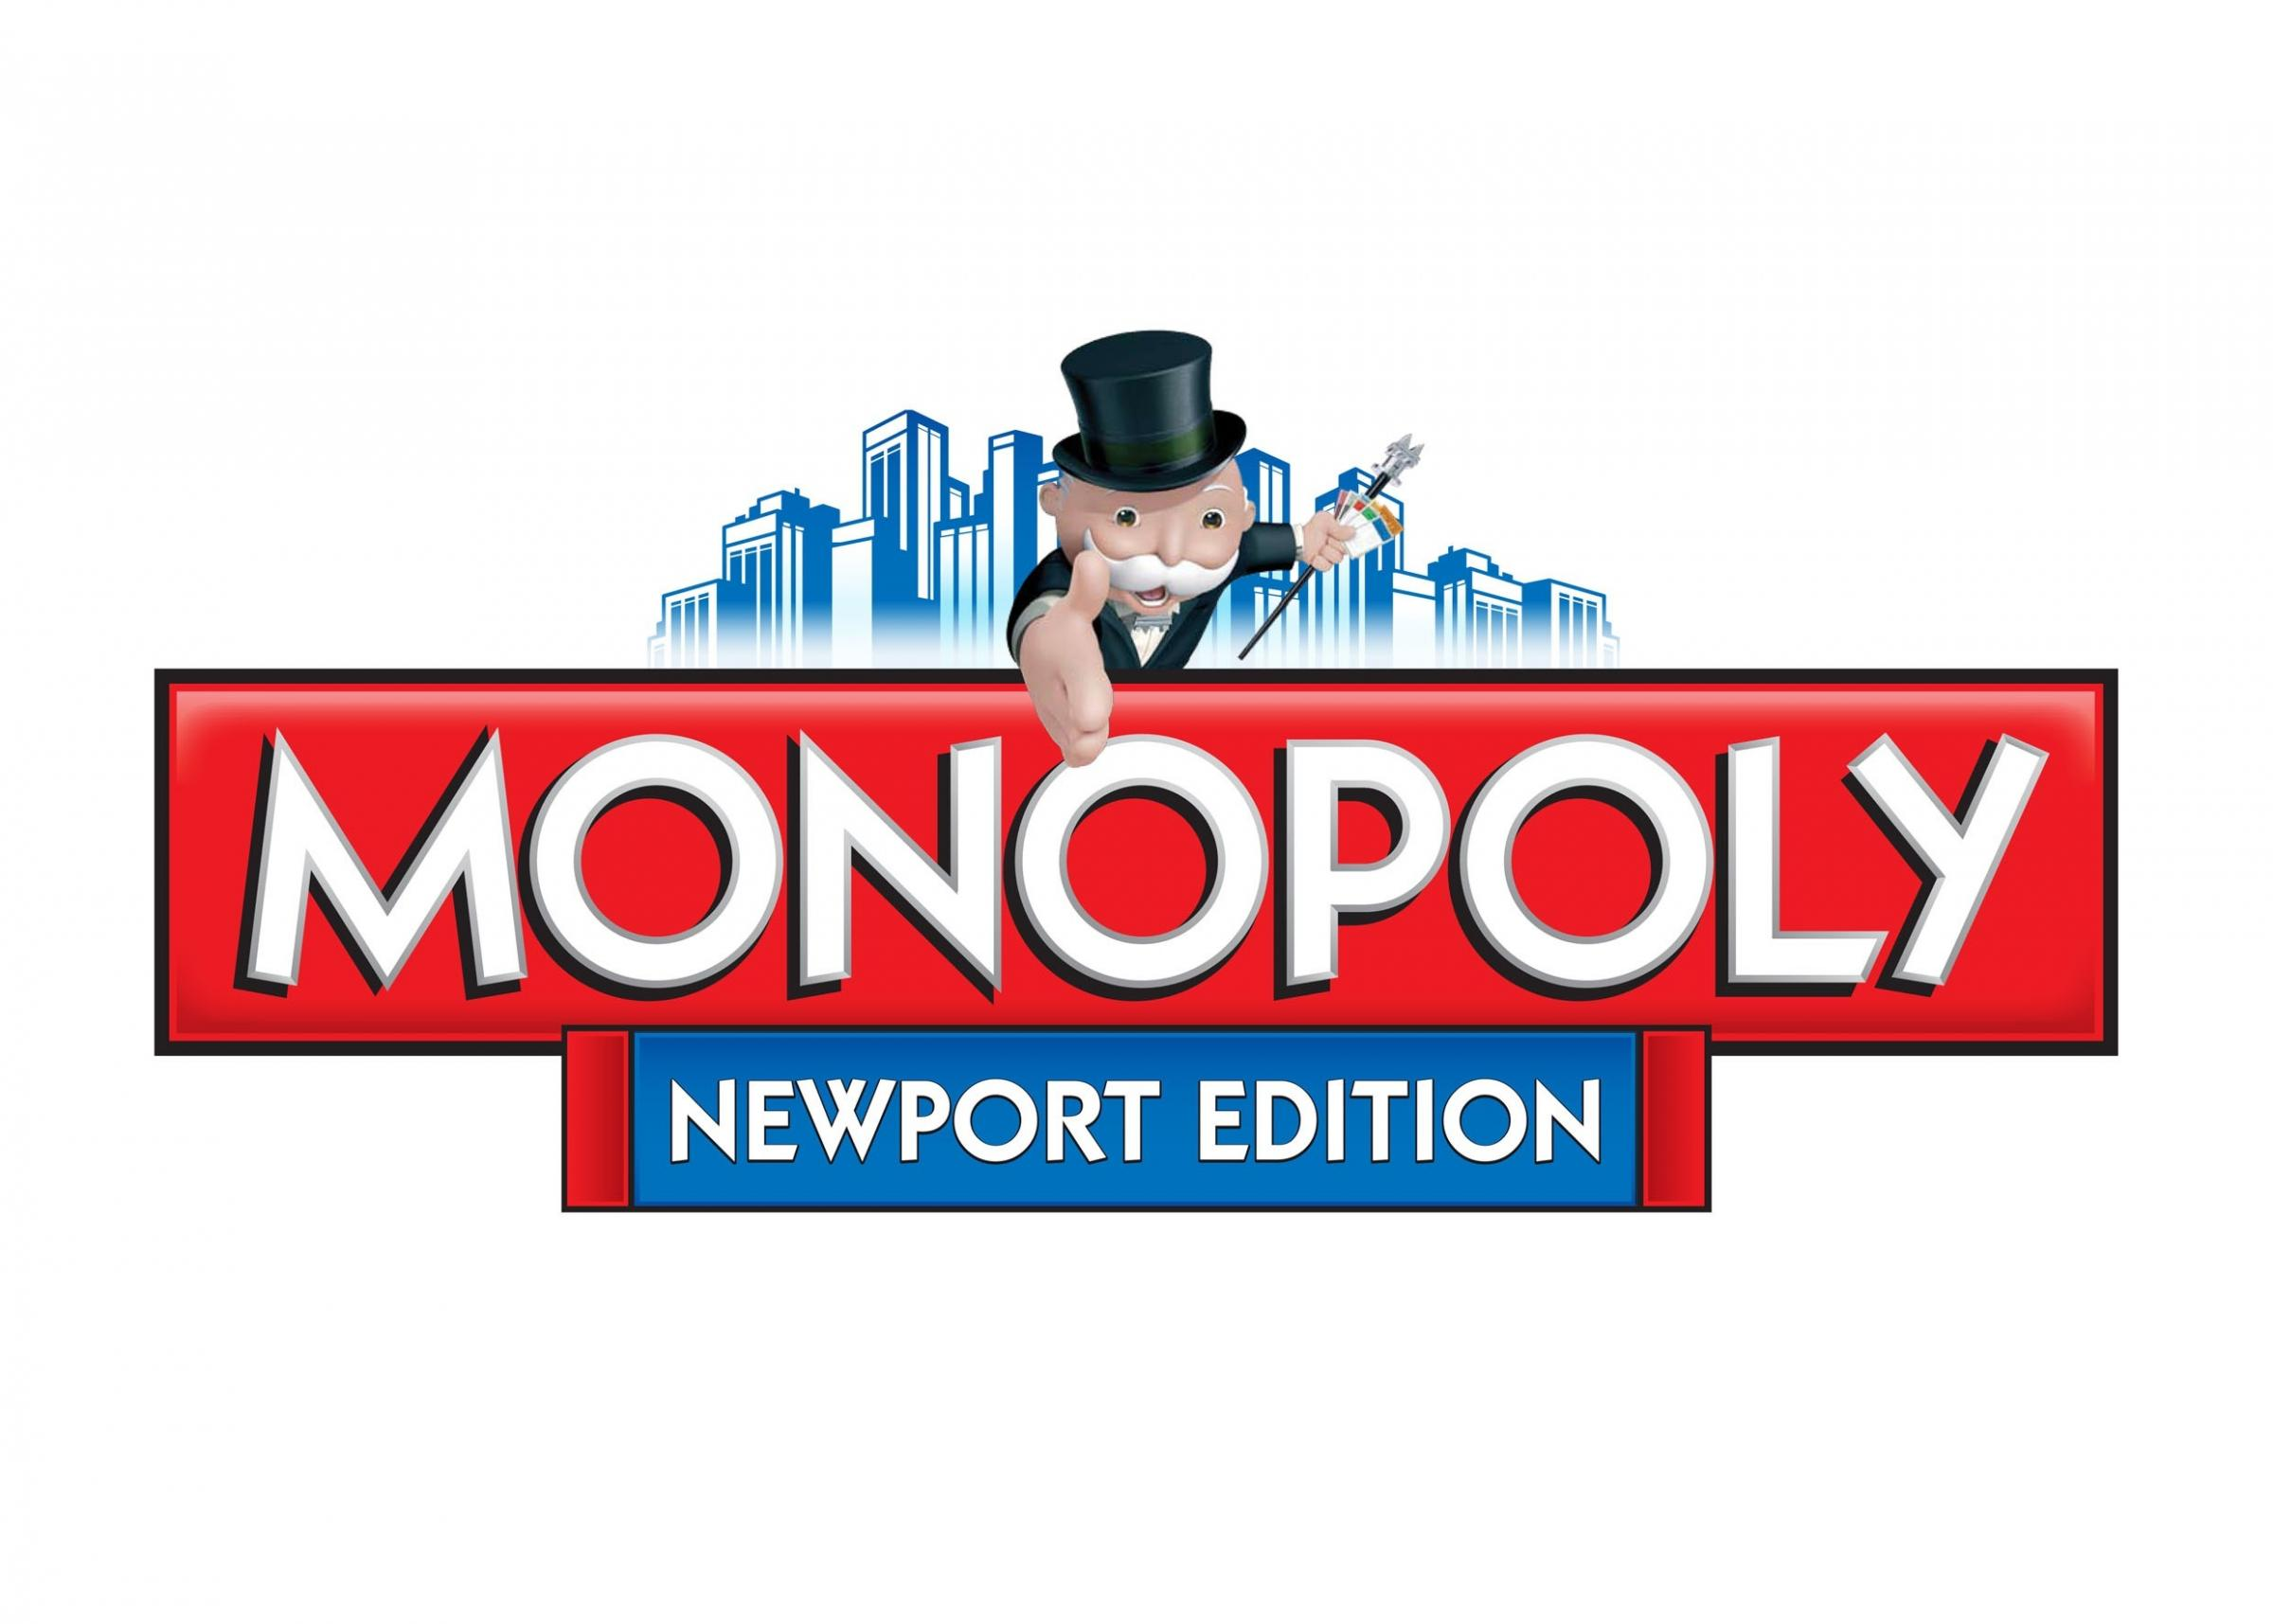 Newport to have its own version of Monopoly